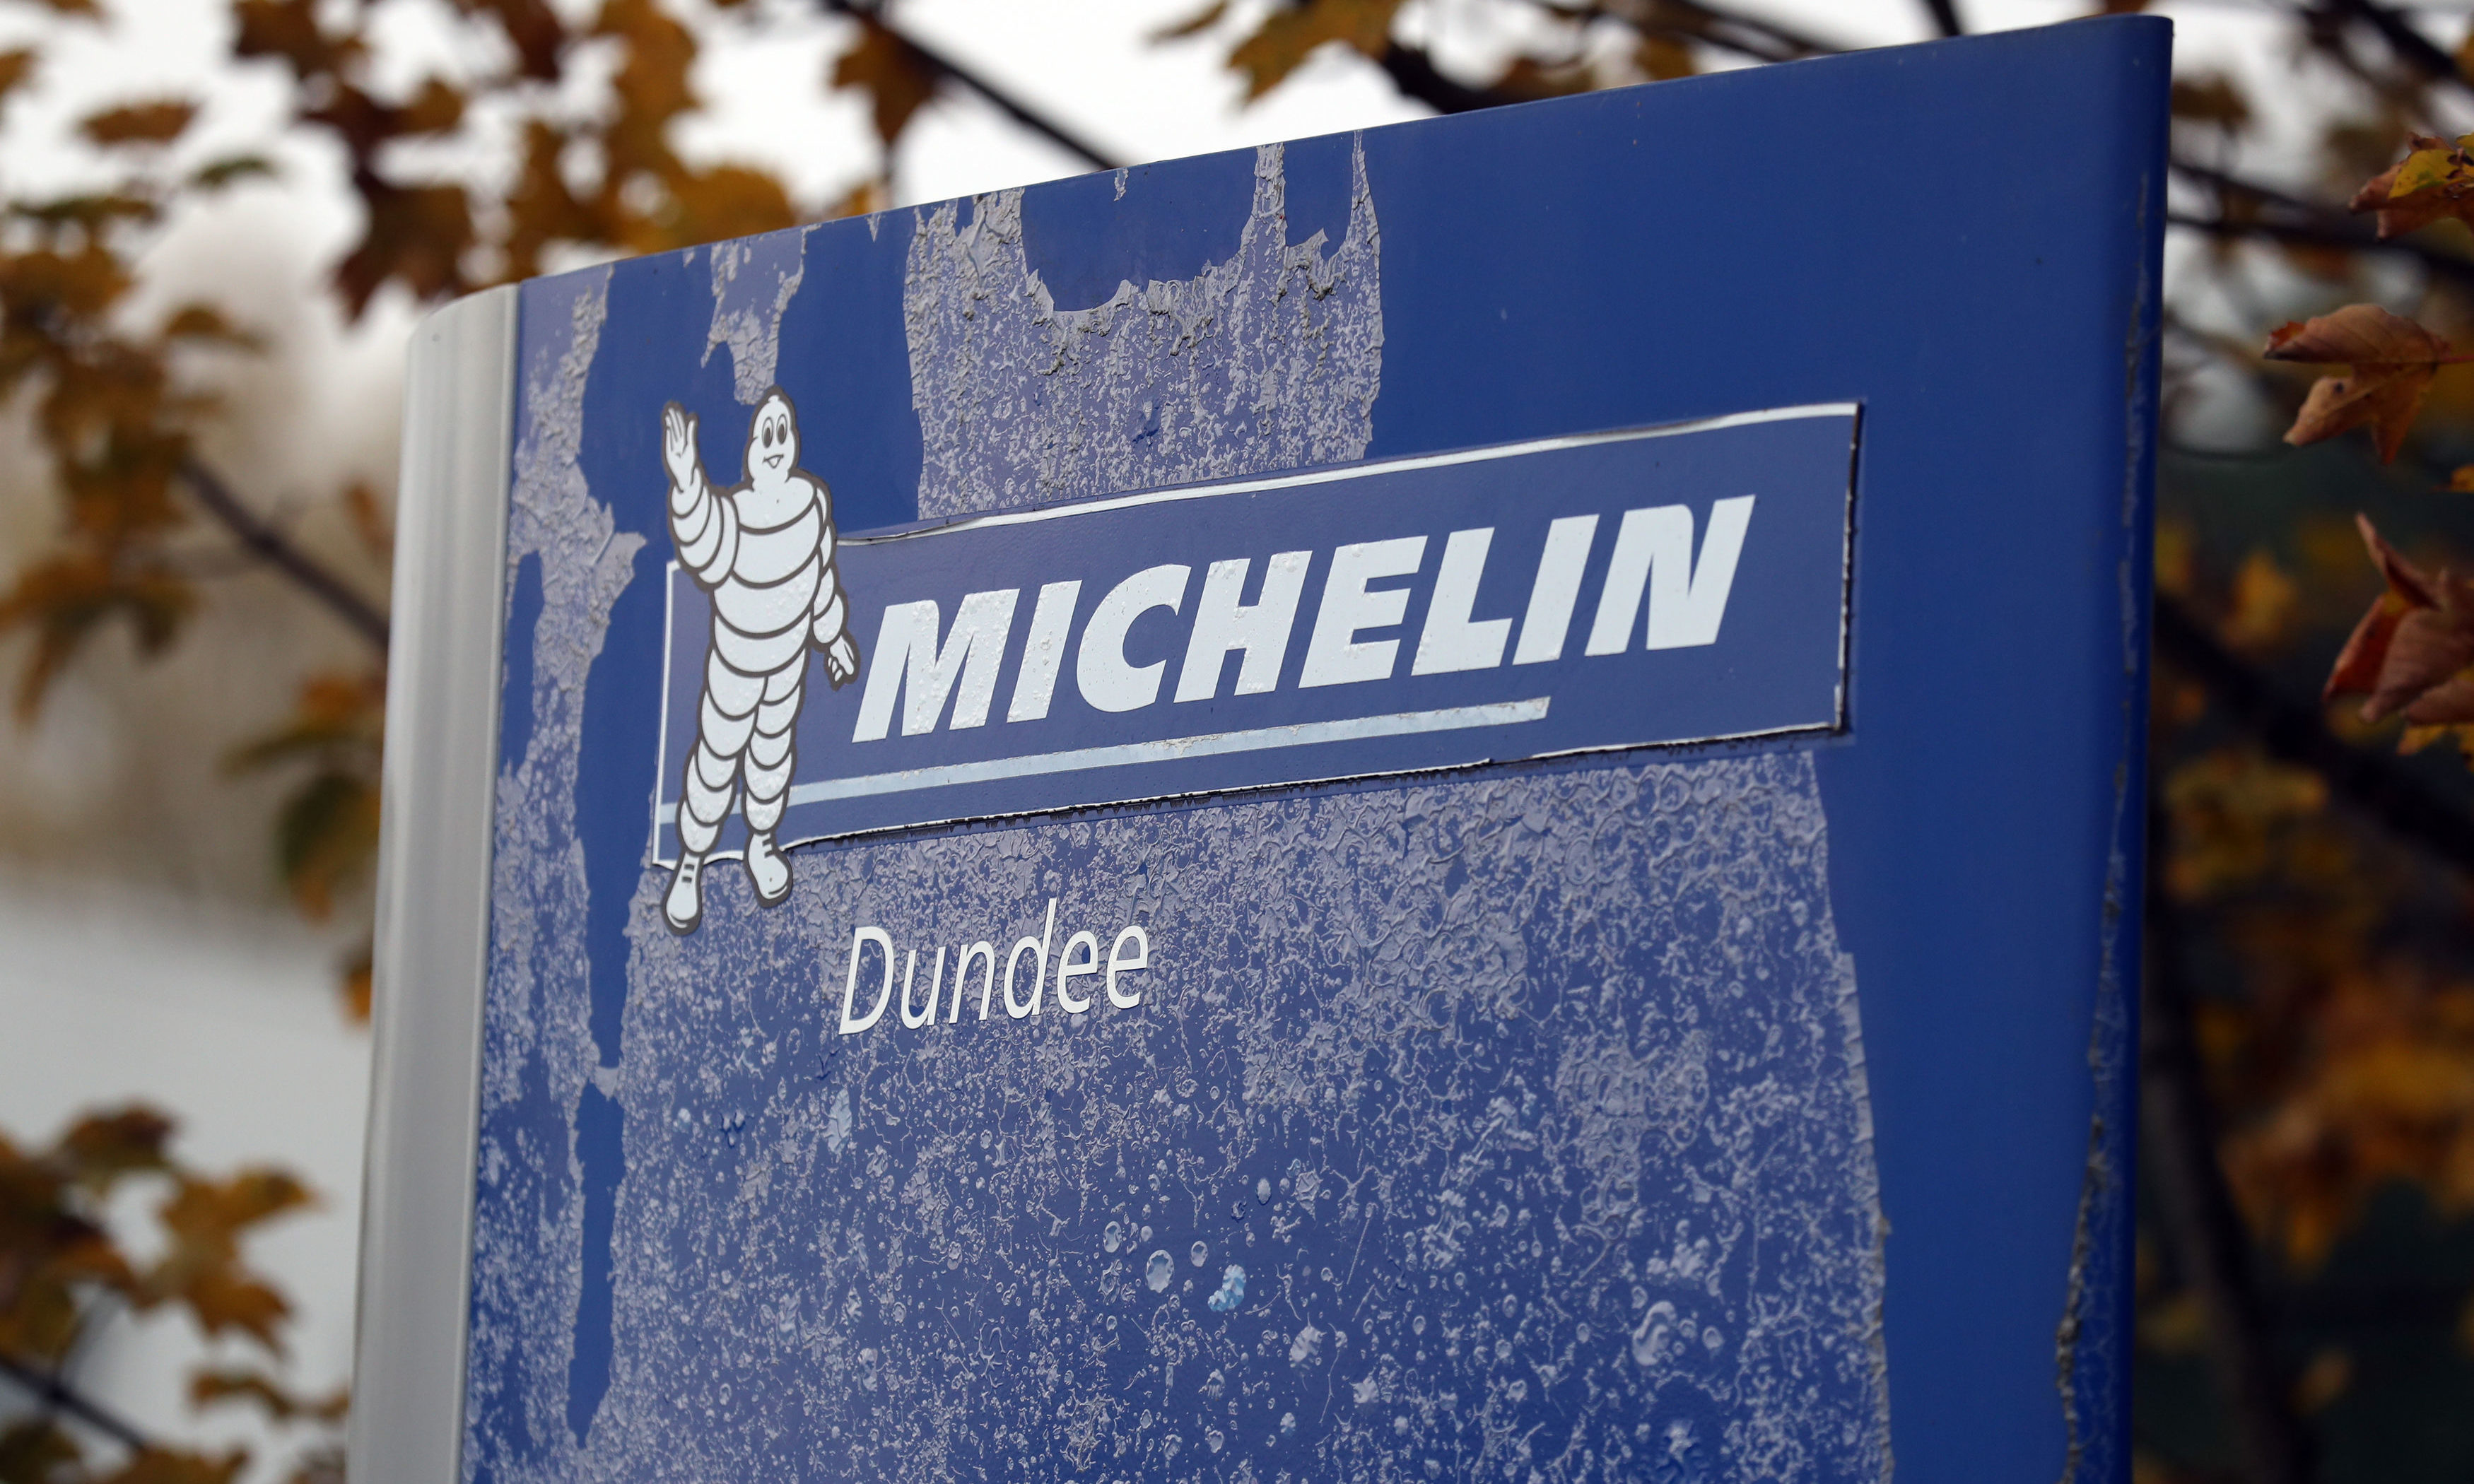 Nearly 850 jobs will go when the Michelin Dundee factory closes